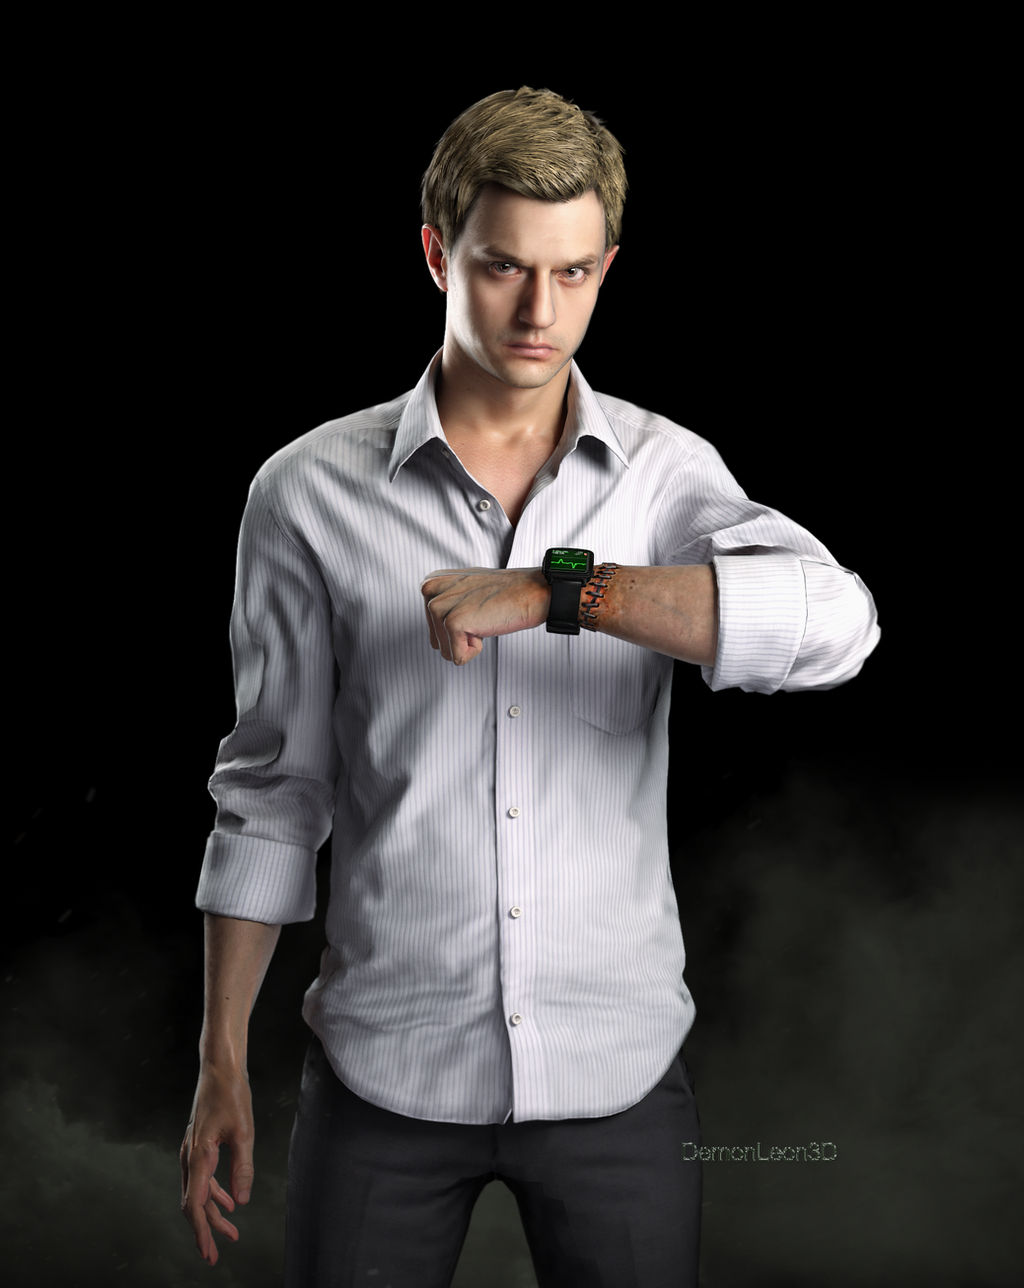 Ethan Winters by DemonLeon3D on DeviantArt